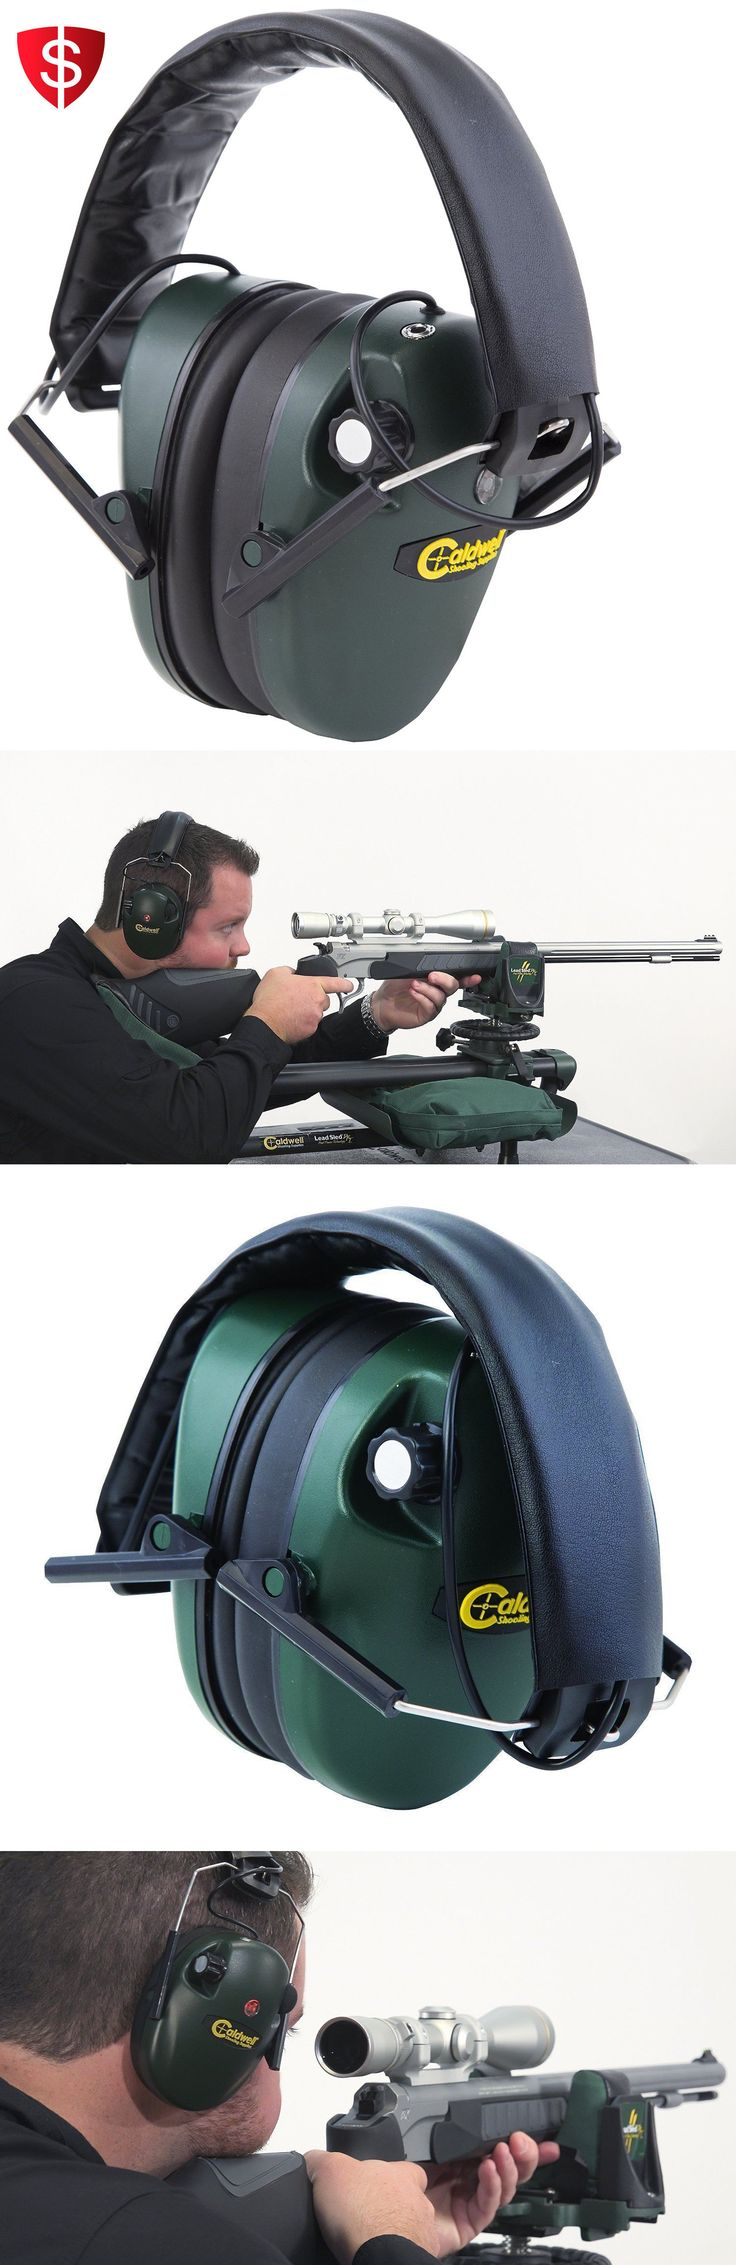 Hearing Protection 73942: Caldwell Electronic Ear Muffs Hearing Protection Impact Sport Earmuffs Shooting -> BUY IT NOW ONLY: $31.32 on eBay!